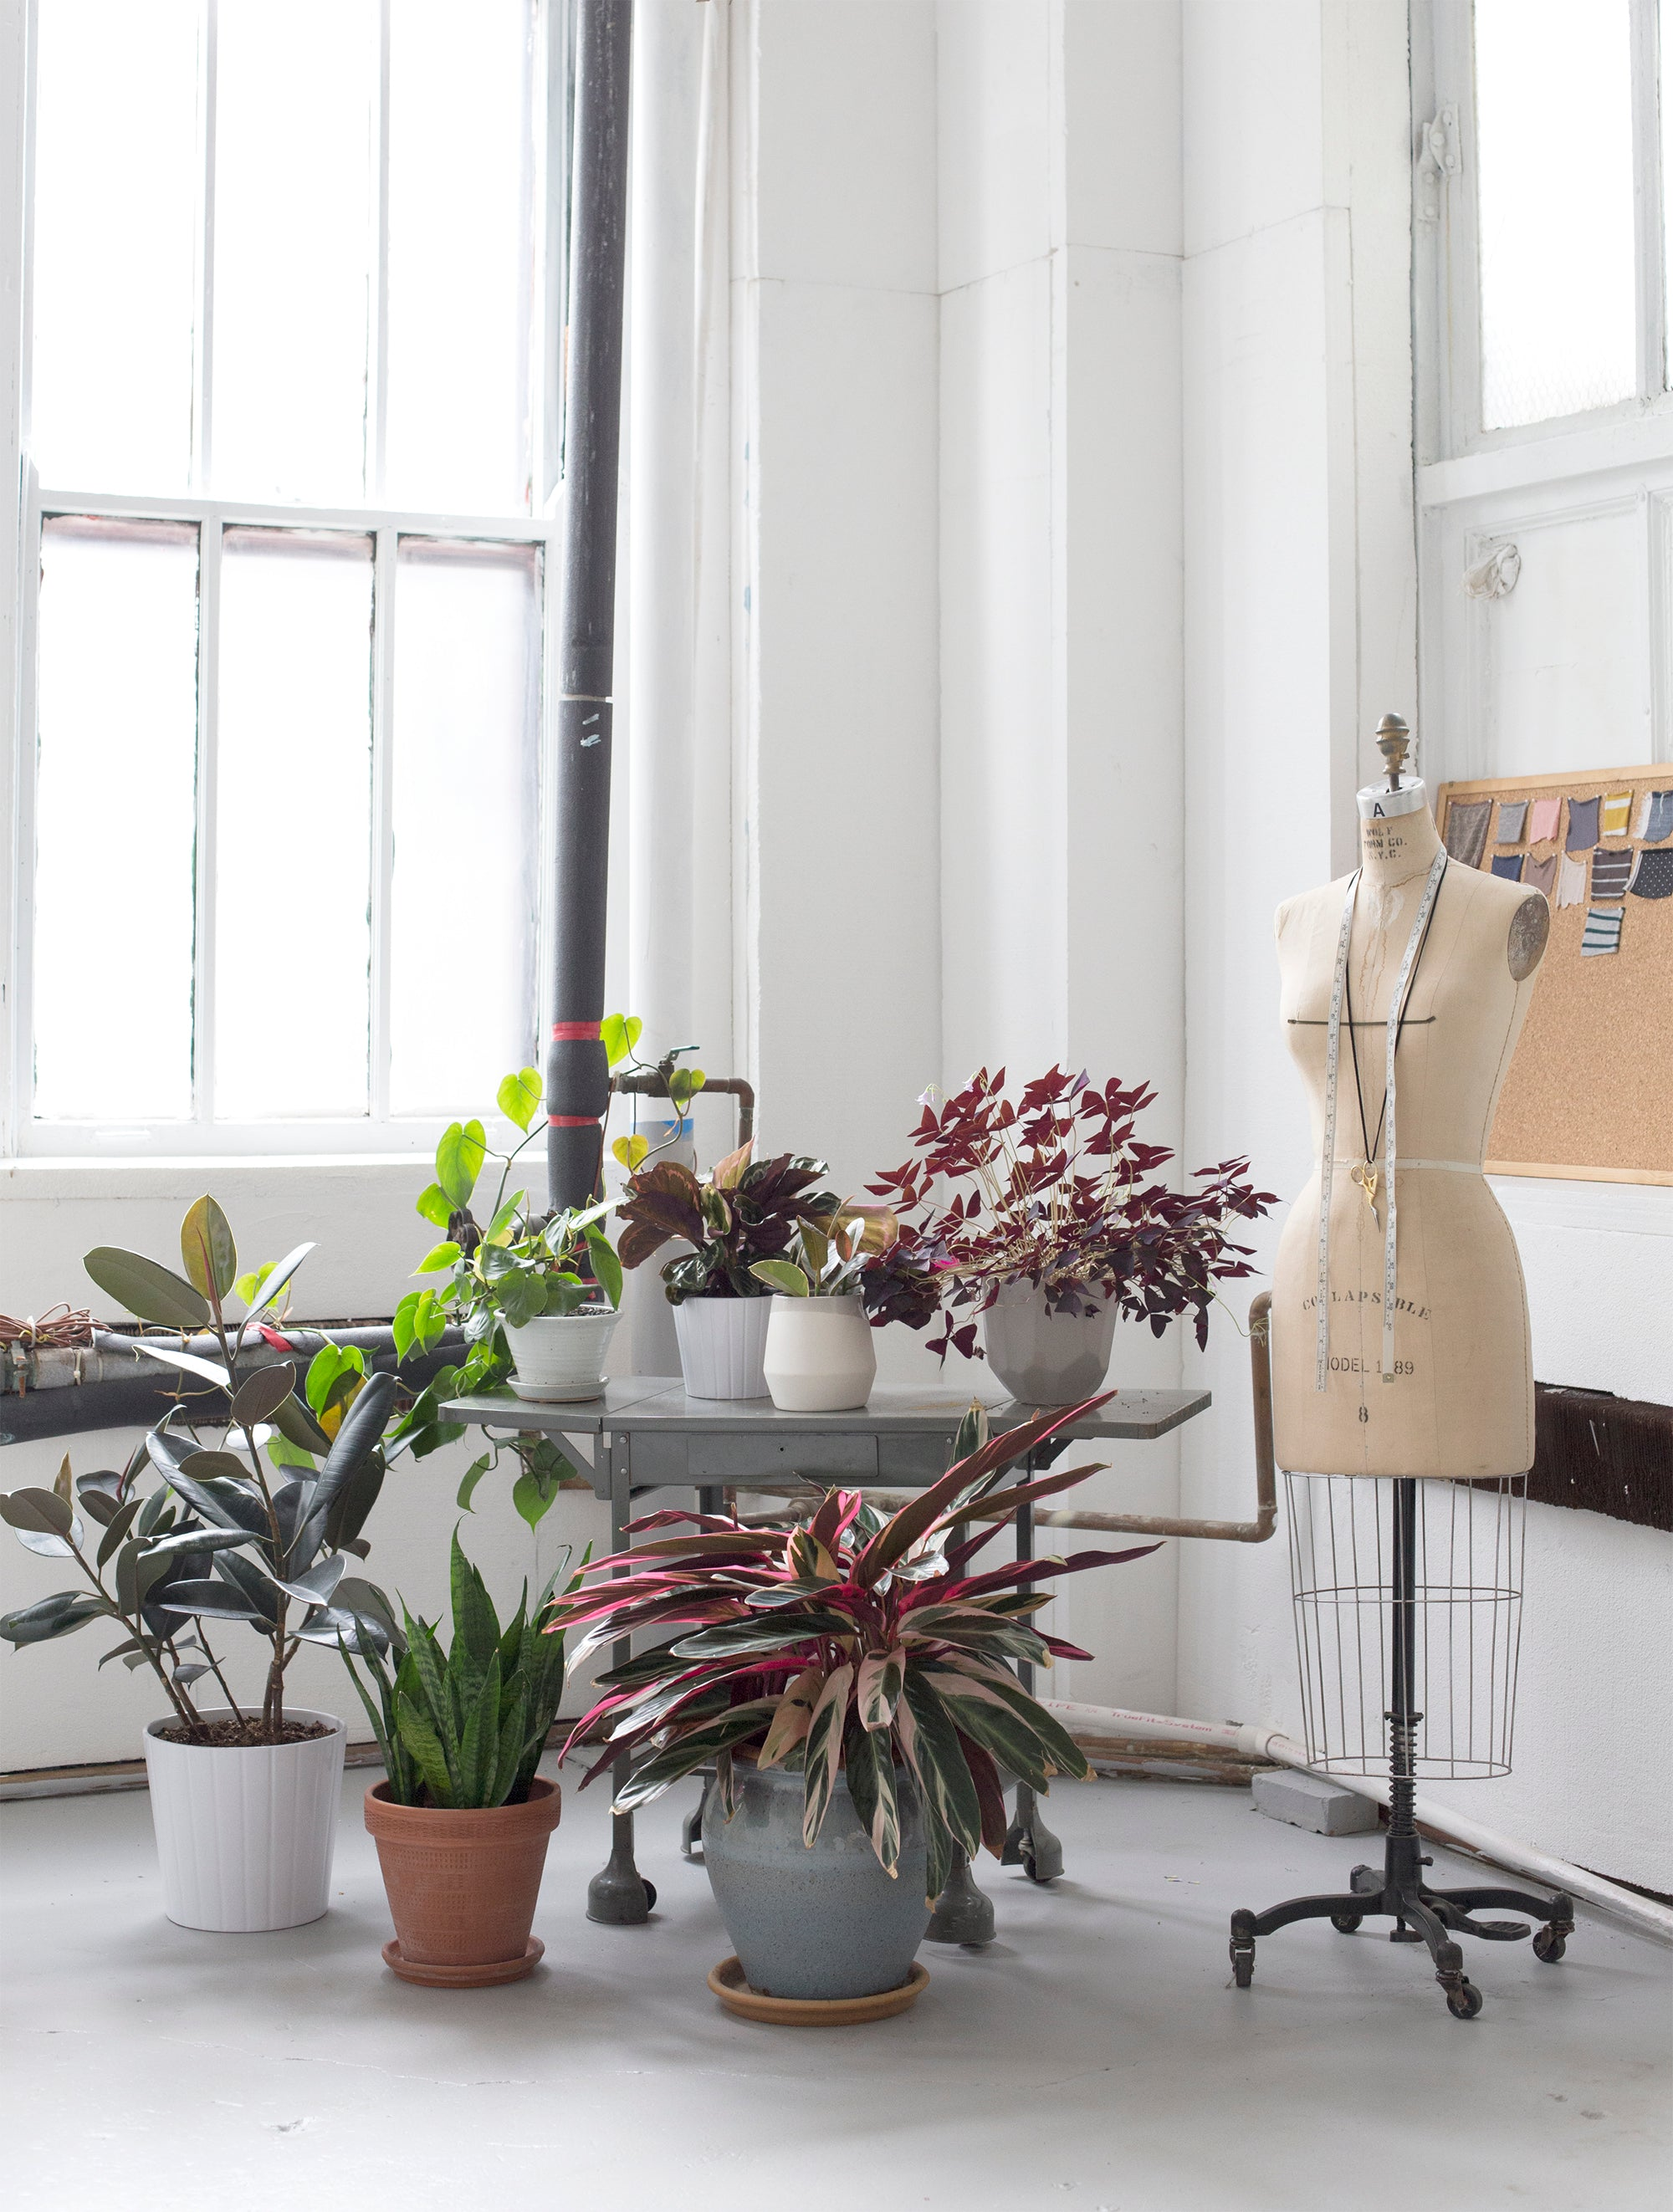 New Studio Workspace | Grainline Studio